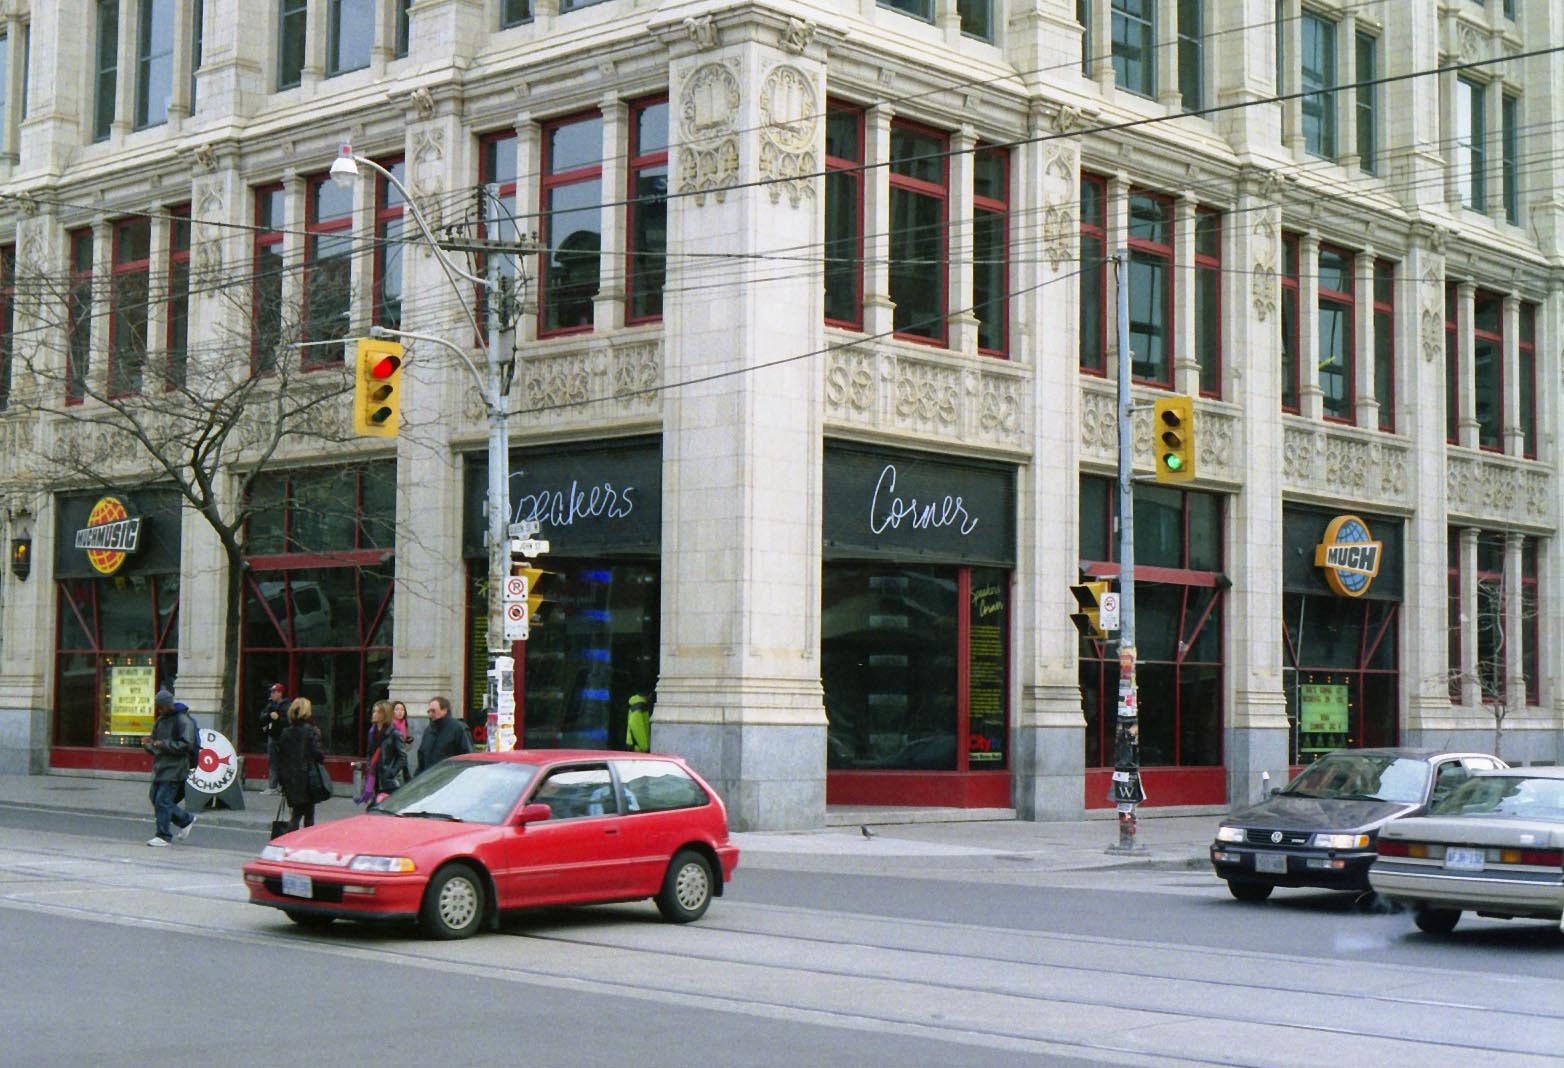 "Streetcorner with a gothic style building on an overcast cold day. A red hatchback car drives through the intersection as six pedestrians cross at the light wearing jackets and tuques. White neon letters reading ""Speakers Corner"" flank the corner of the building, along with the MuchMusic logo and Much sign."